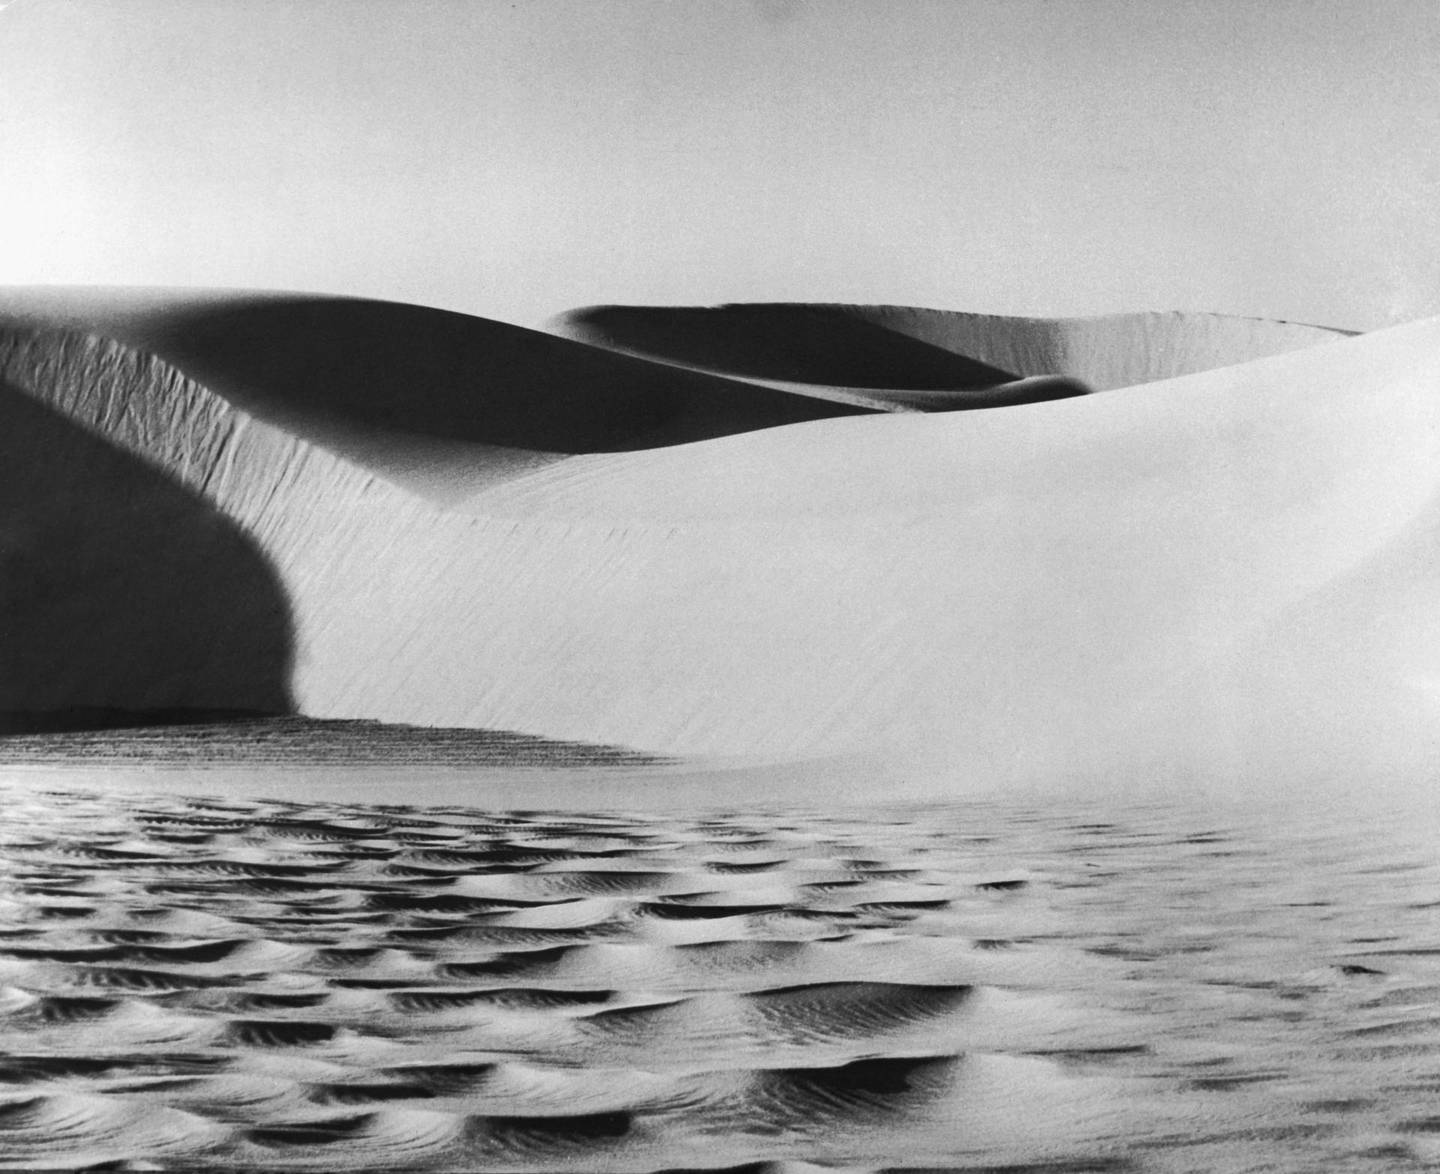 Sand dunes in the desert region of Saudi Arabia known as the 'Empty Quarter', 1959. (Photo by Keystone Features/Hulton Archive/Getty Images)